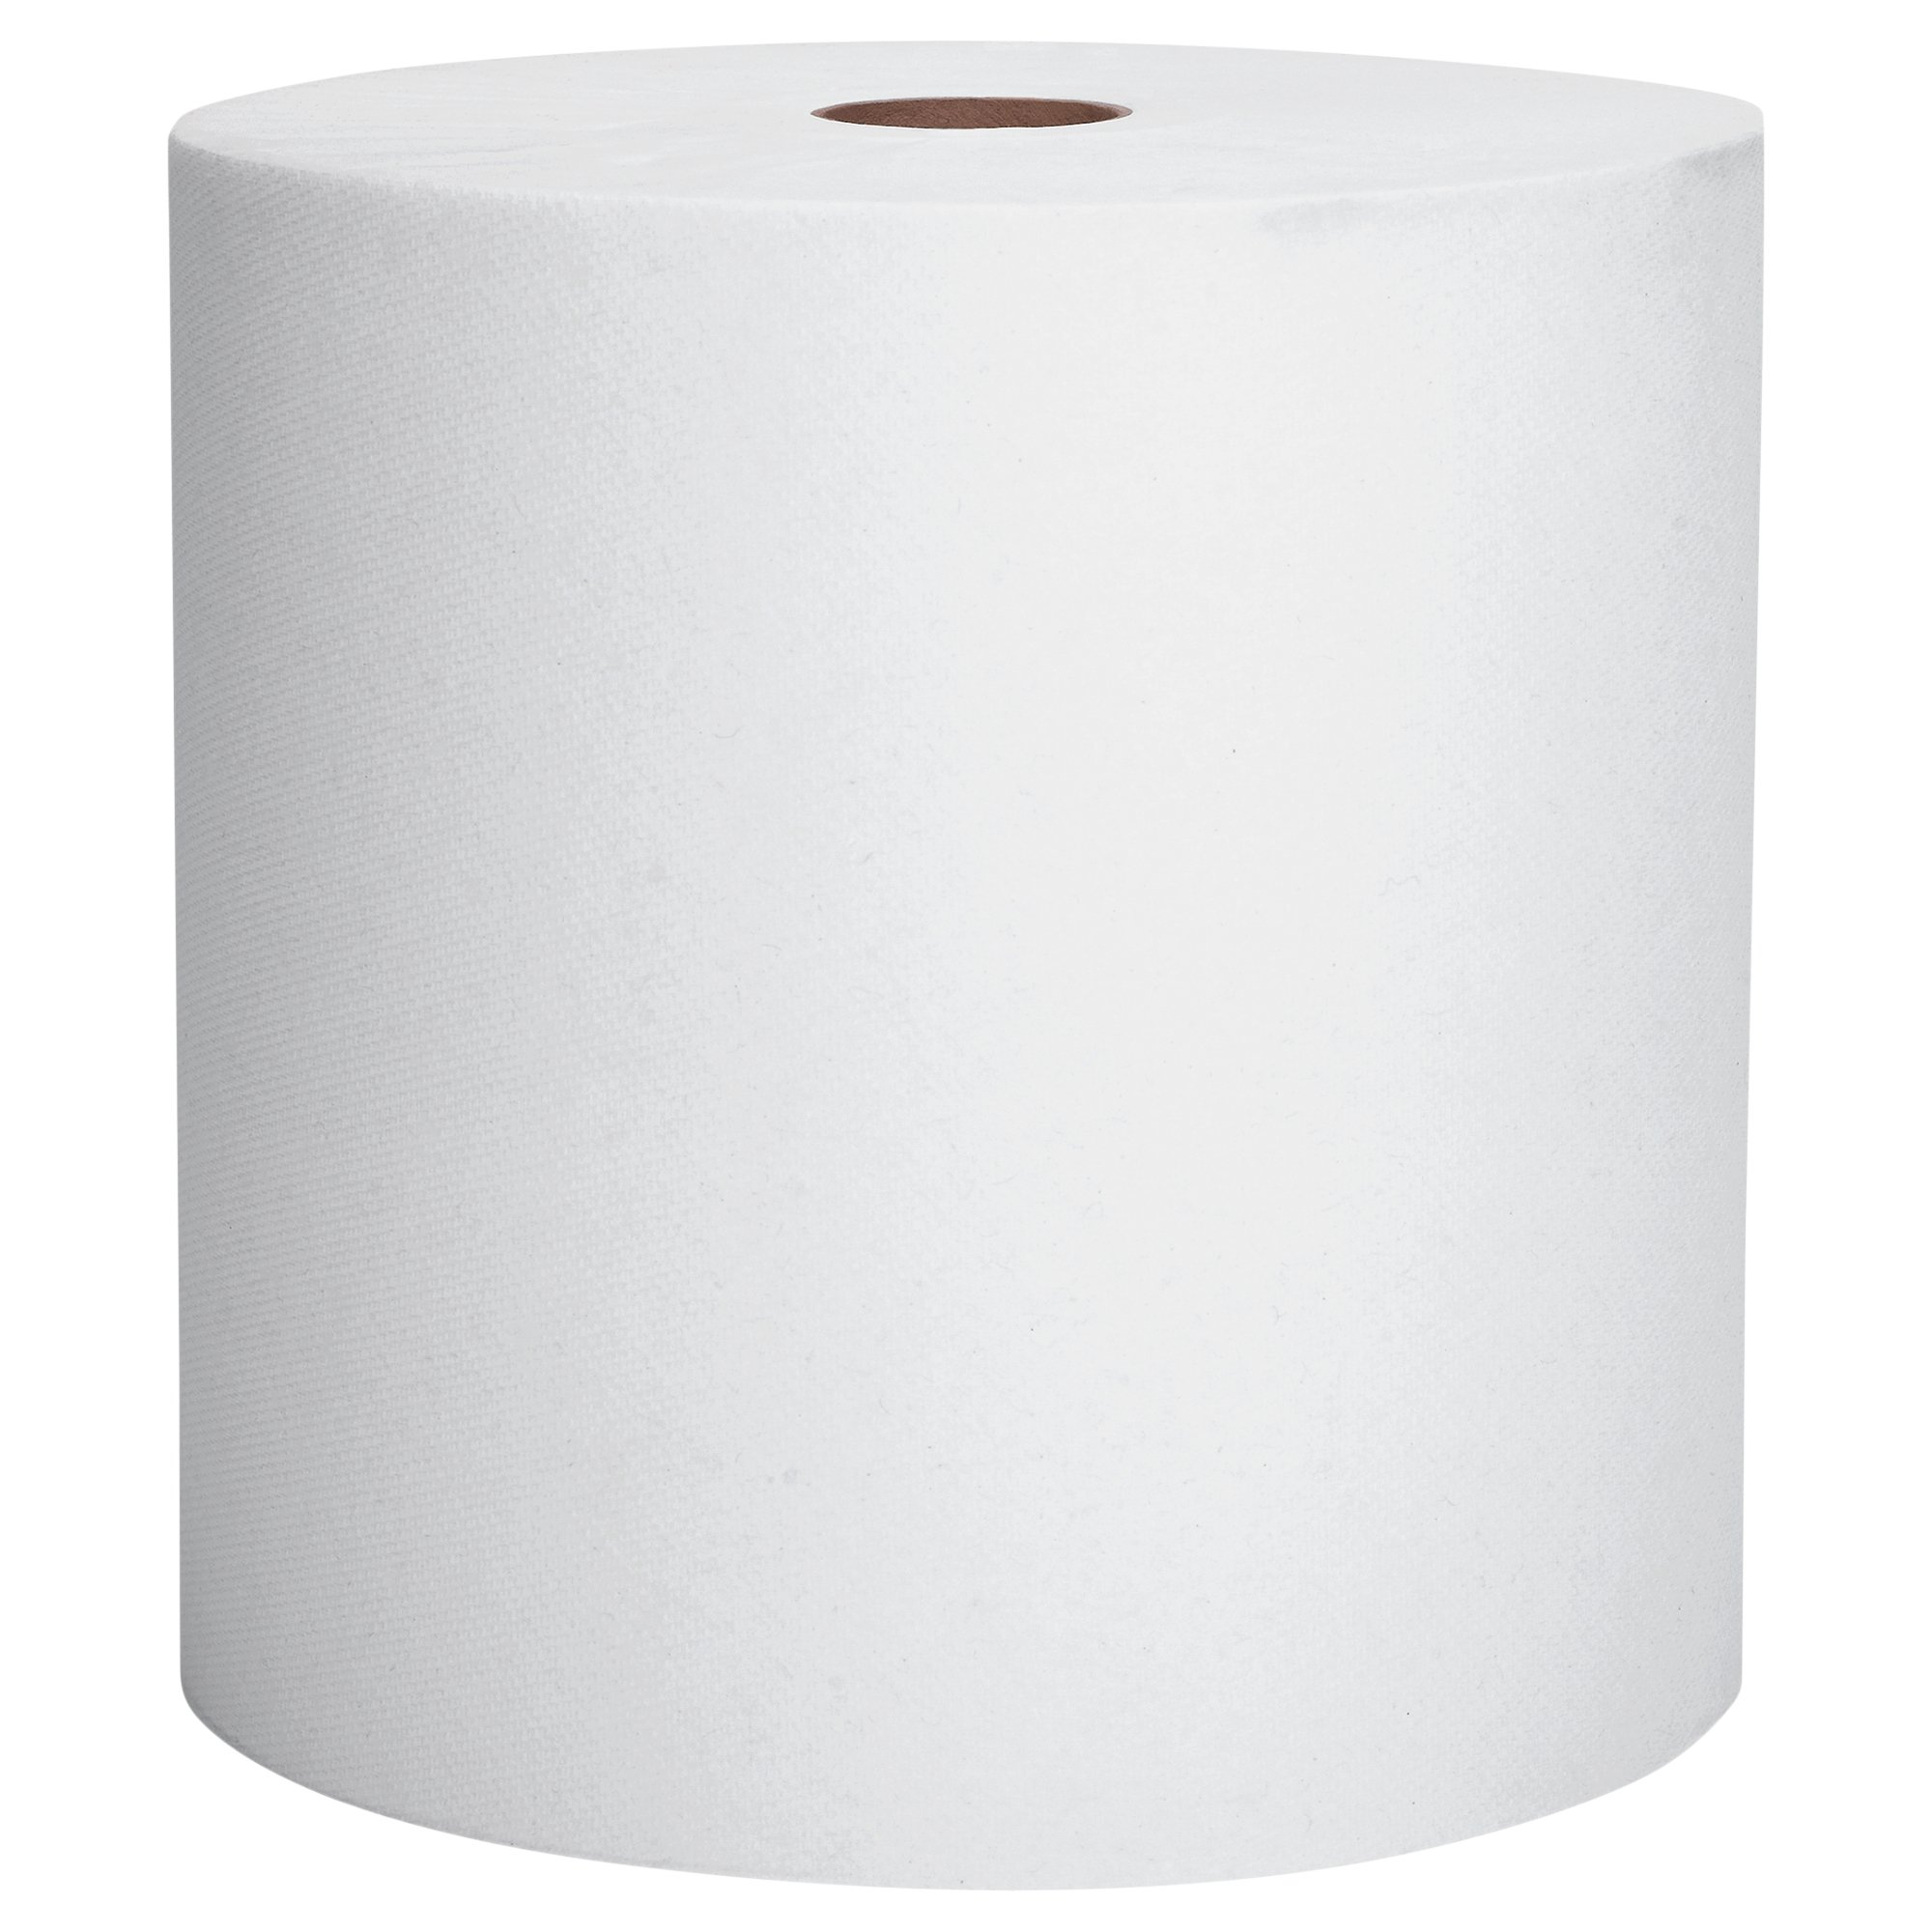 Scott Essential High Capacity Hard Roll Paper Towels (01005), White, 1000' / Roll, 6 Paper Towel Rolls/Convenience Case